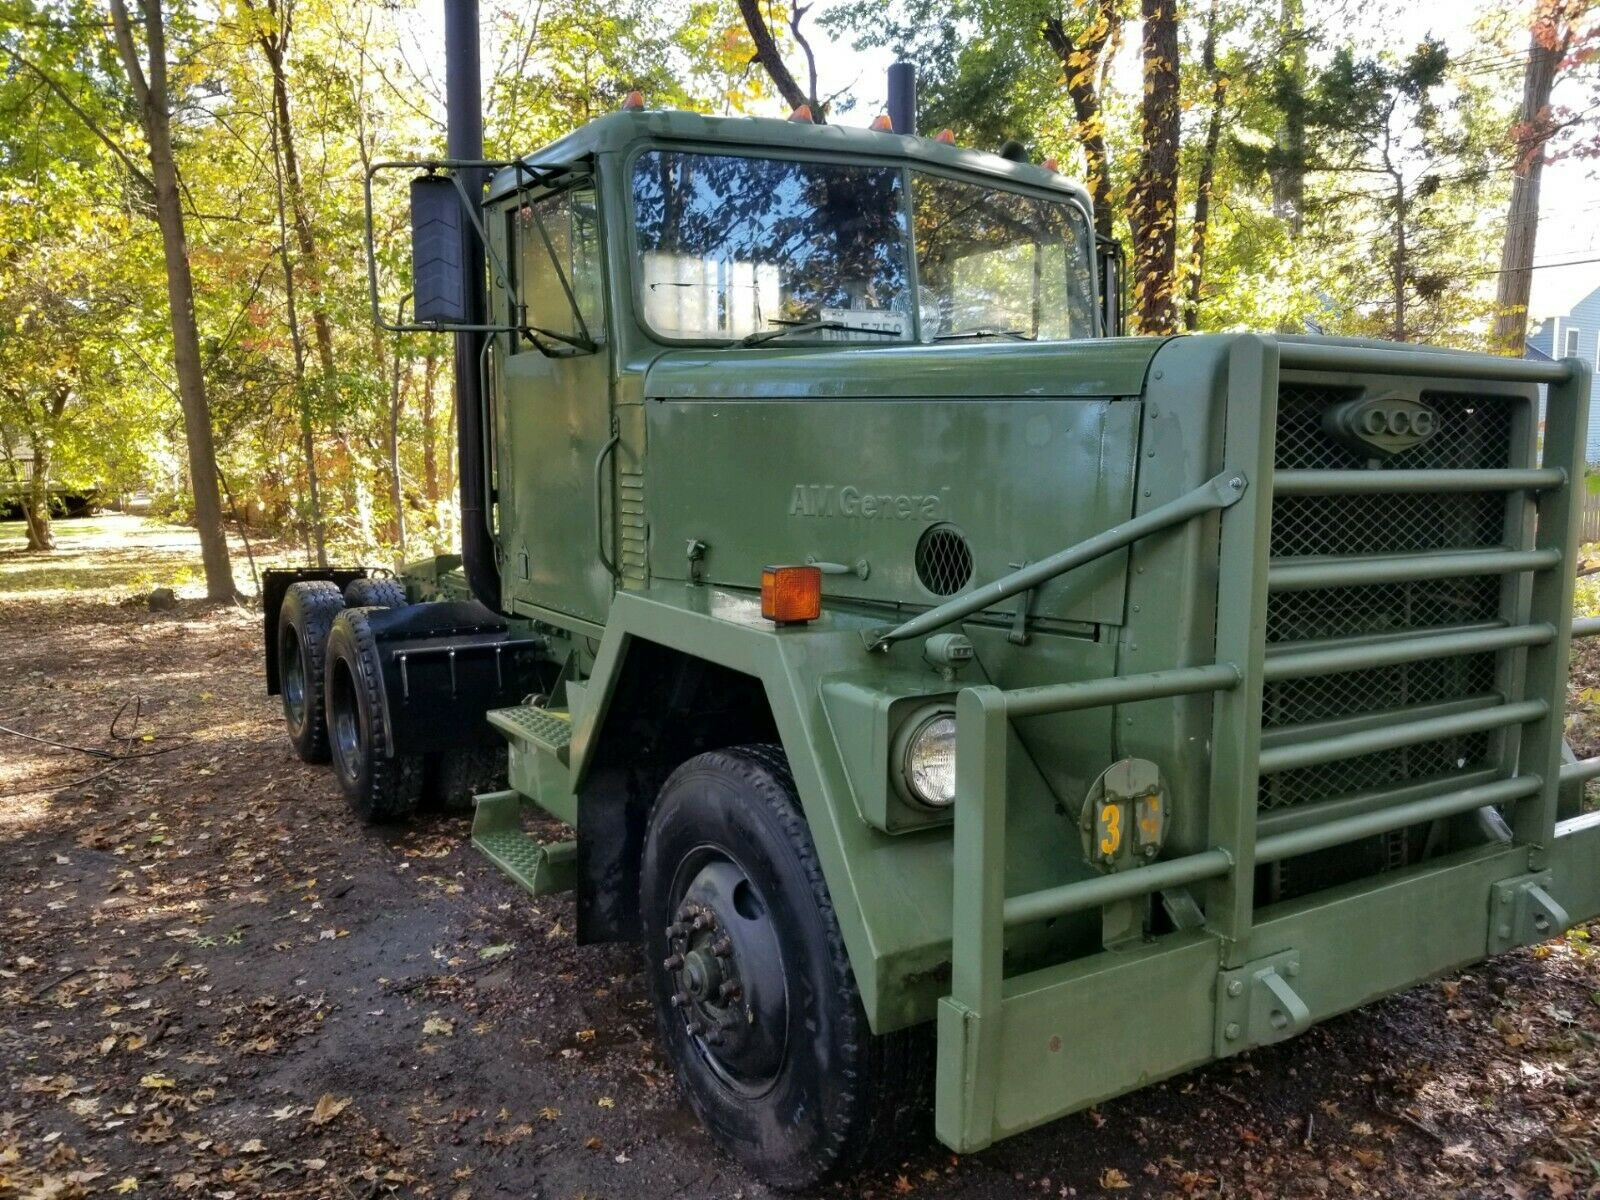 Straight Pipes and Olive Drab: This Early 1980s AM General Built M-915 A1 Rig Is Awesome And We Want It